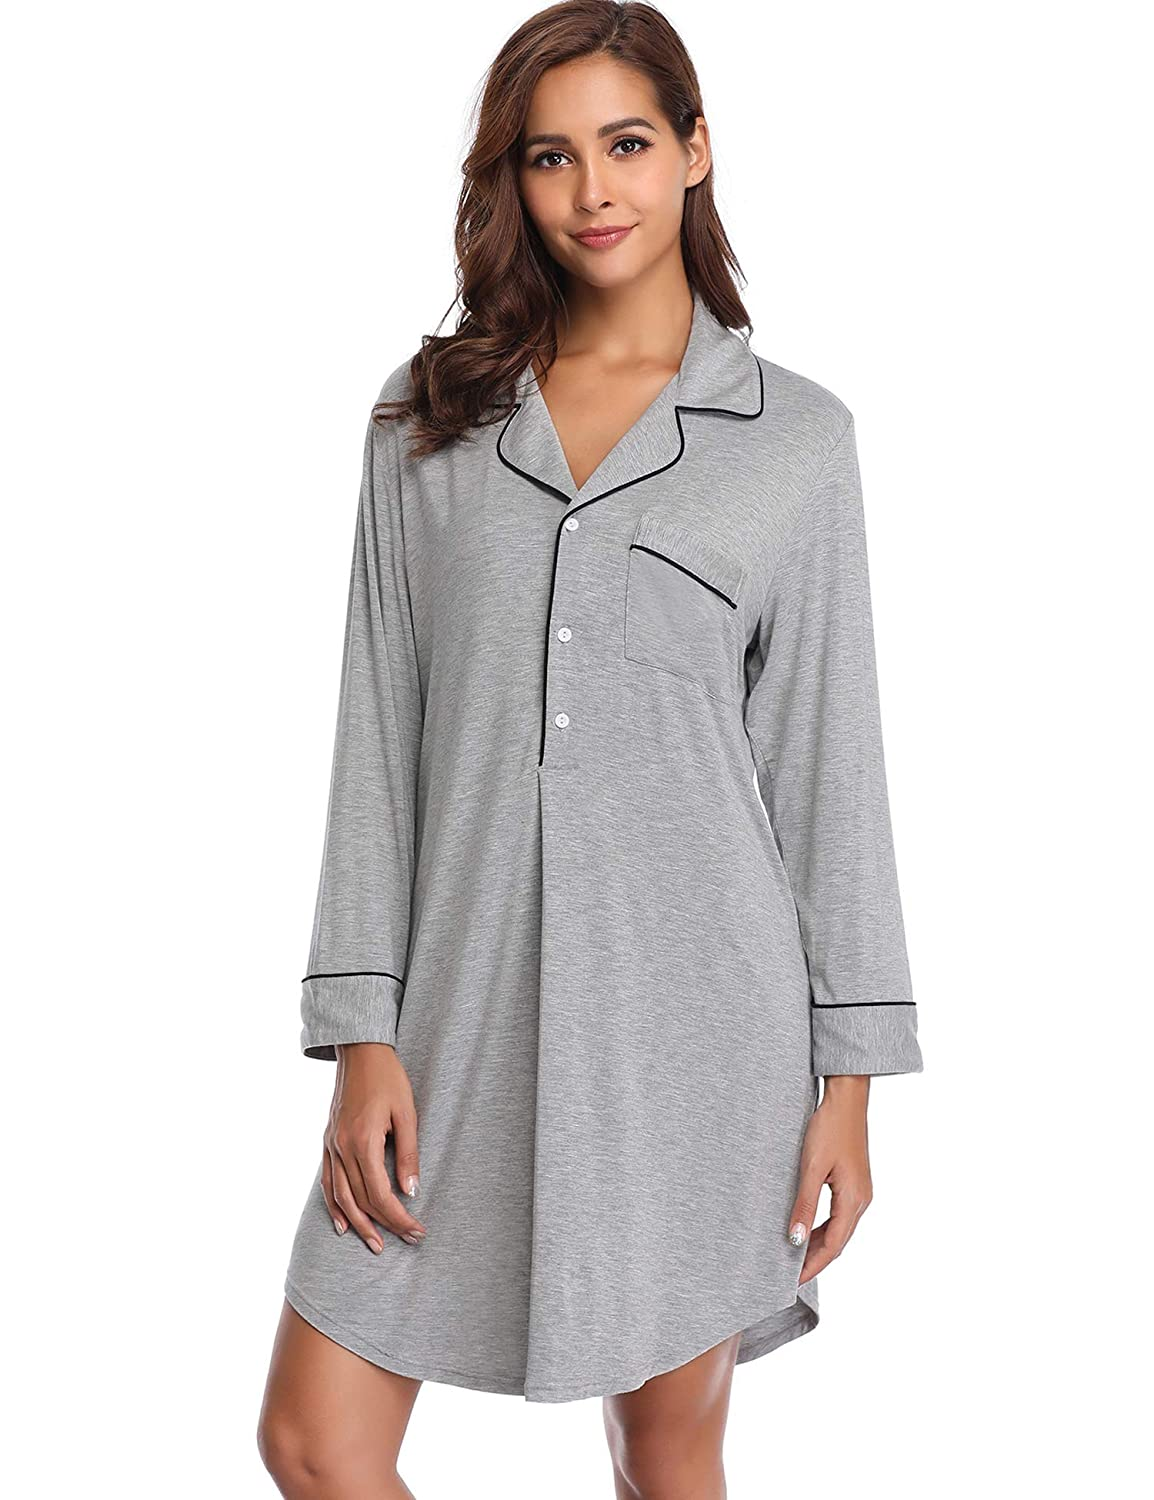 8398687a05 ... Long Sleeve Nightshirt Boyfriend Sleep Shirt Button-up Lapel Collar  Sleepwear. Wholesale Price 18.99 -  26.99 5% spandex. COMFORT MATERIALS -  Nightgowns ...